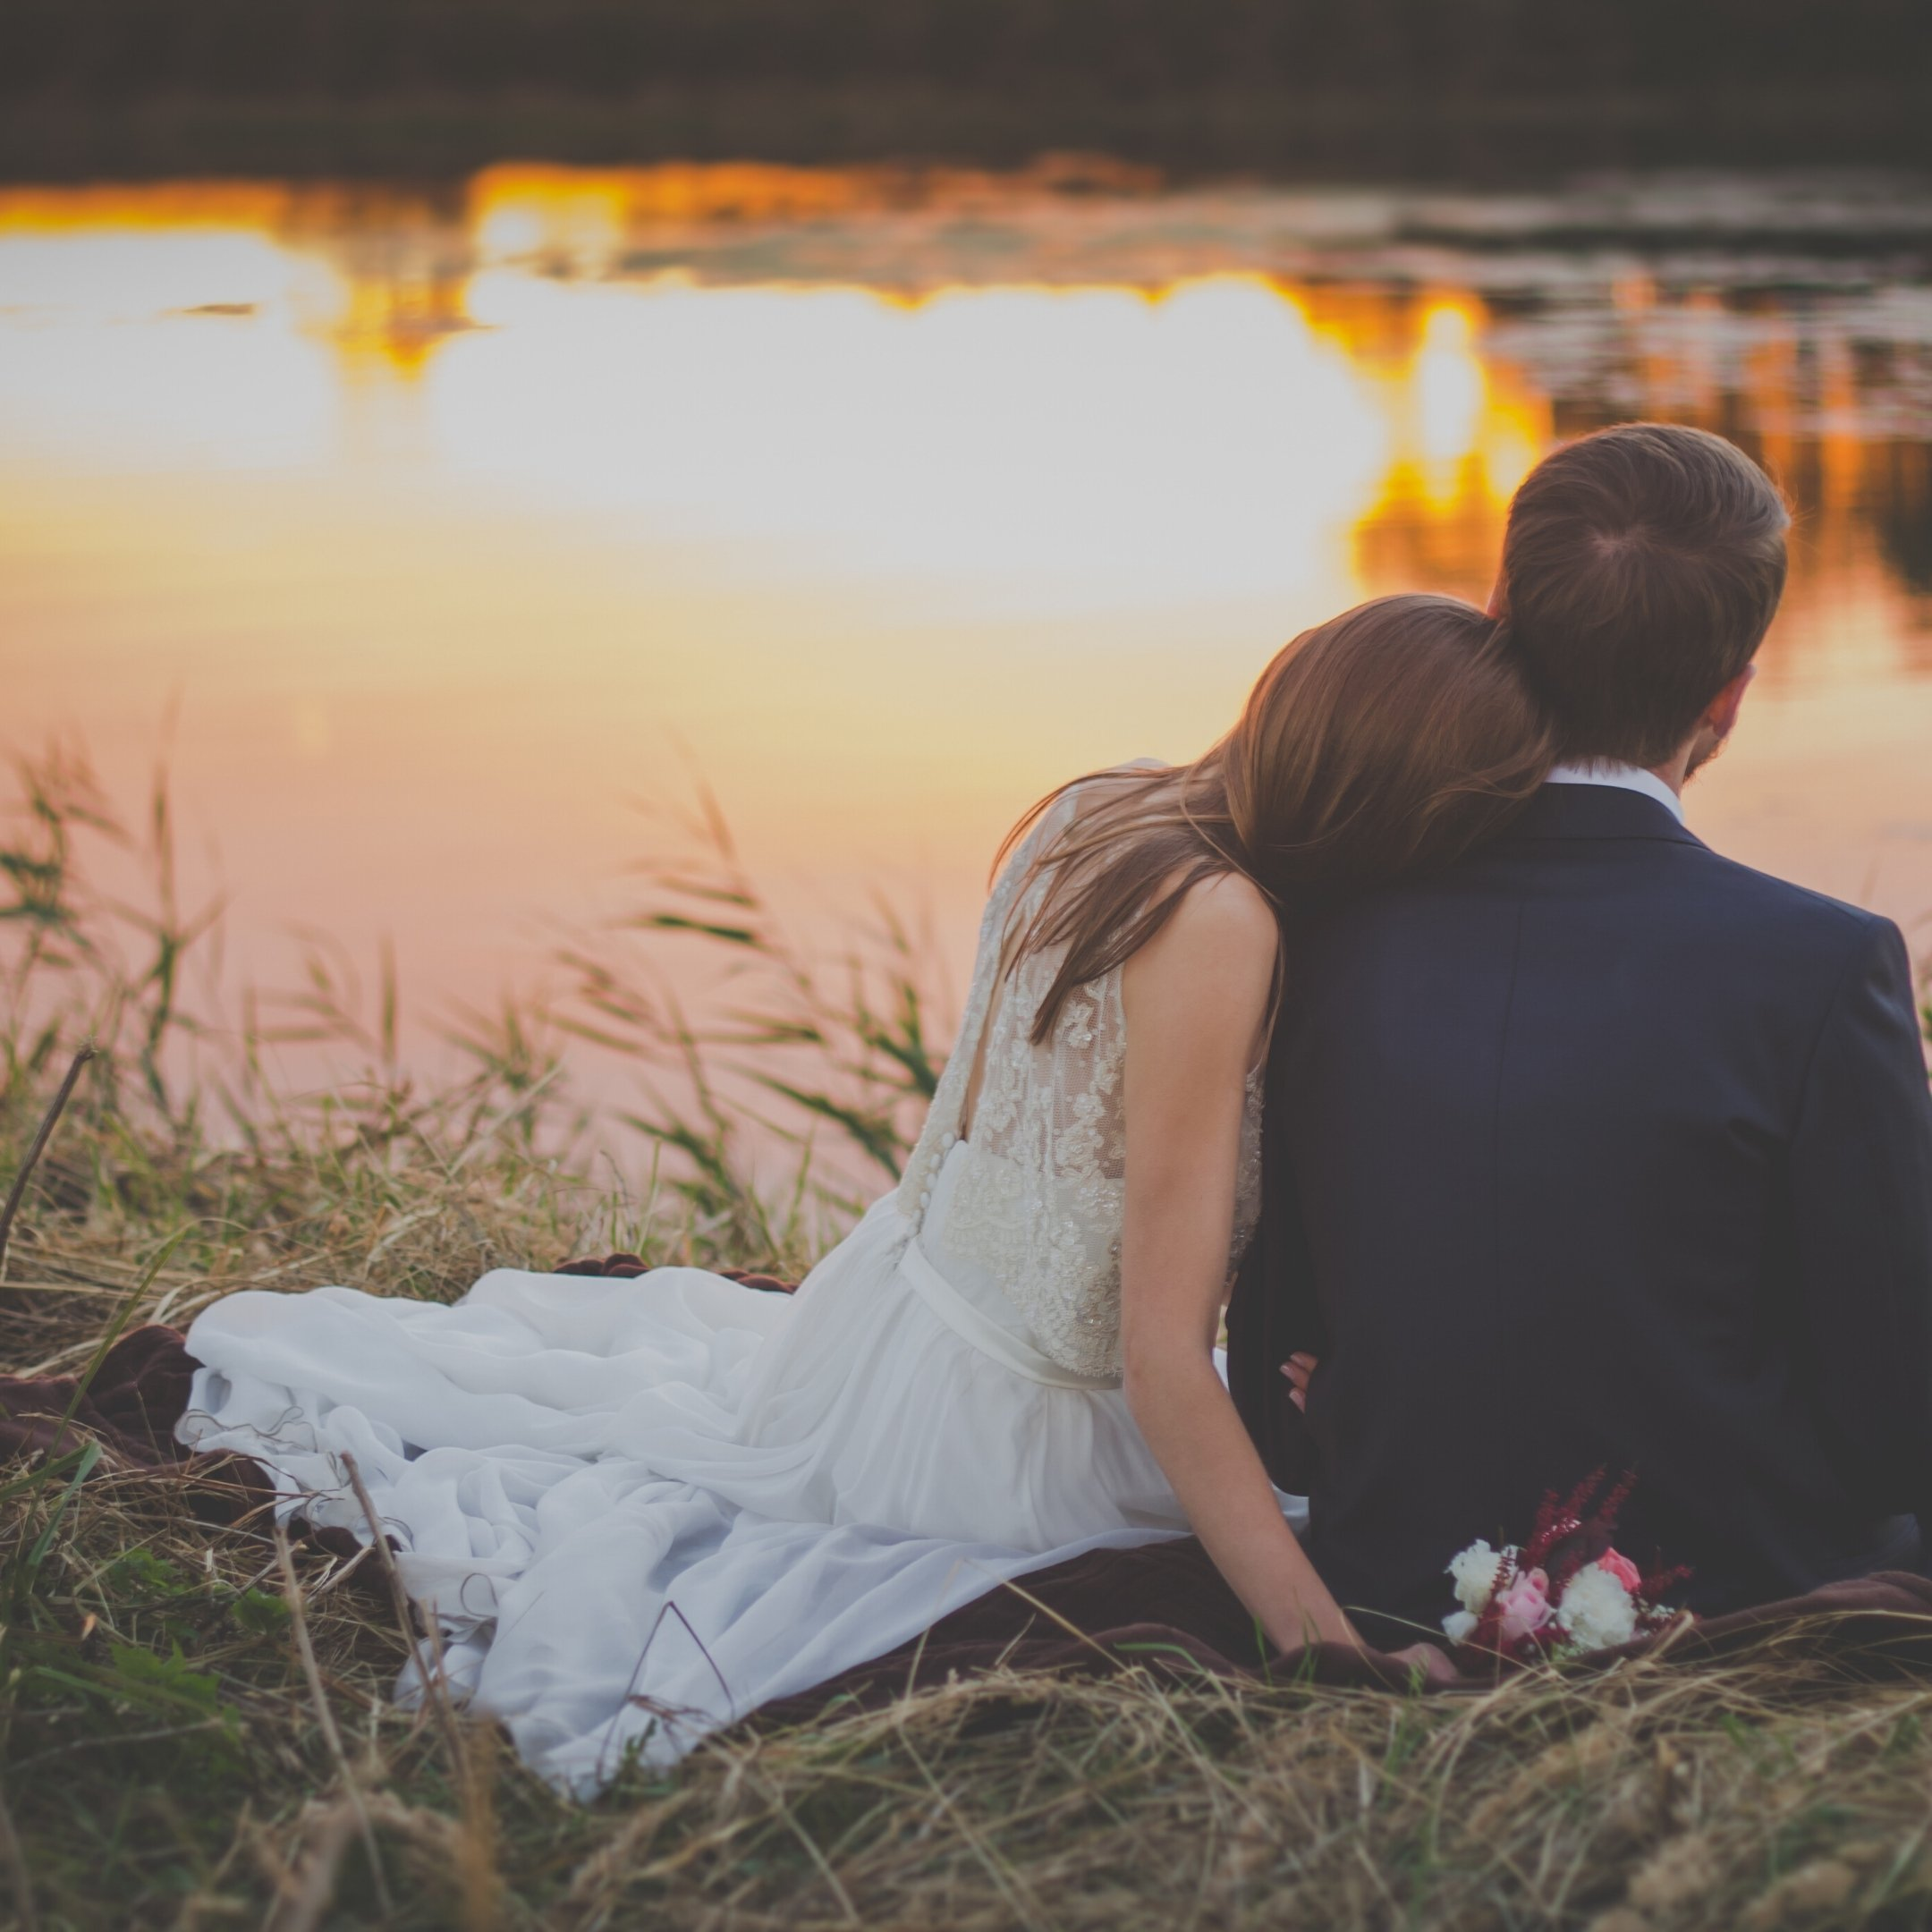 Bride and groom overlooking pond at sunset for post How to Be a Better Wife in 9 Easy Steps